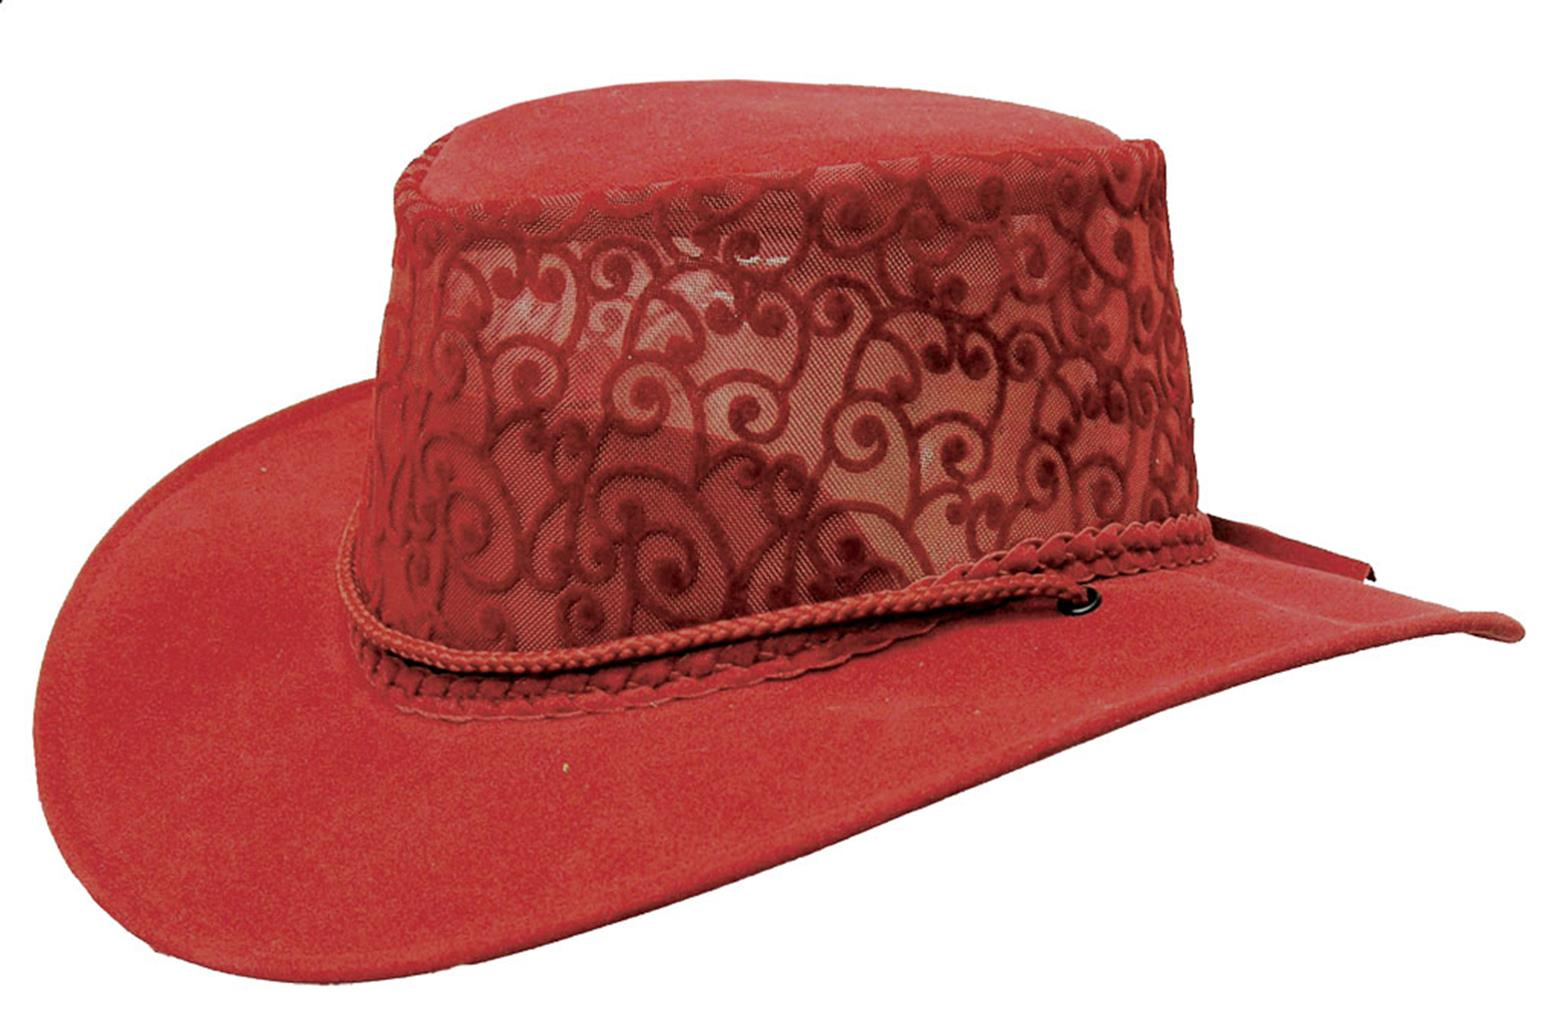 Florentine Soaka & Mesh Hat in Red